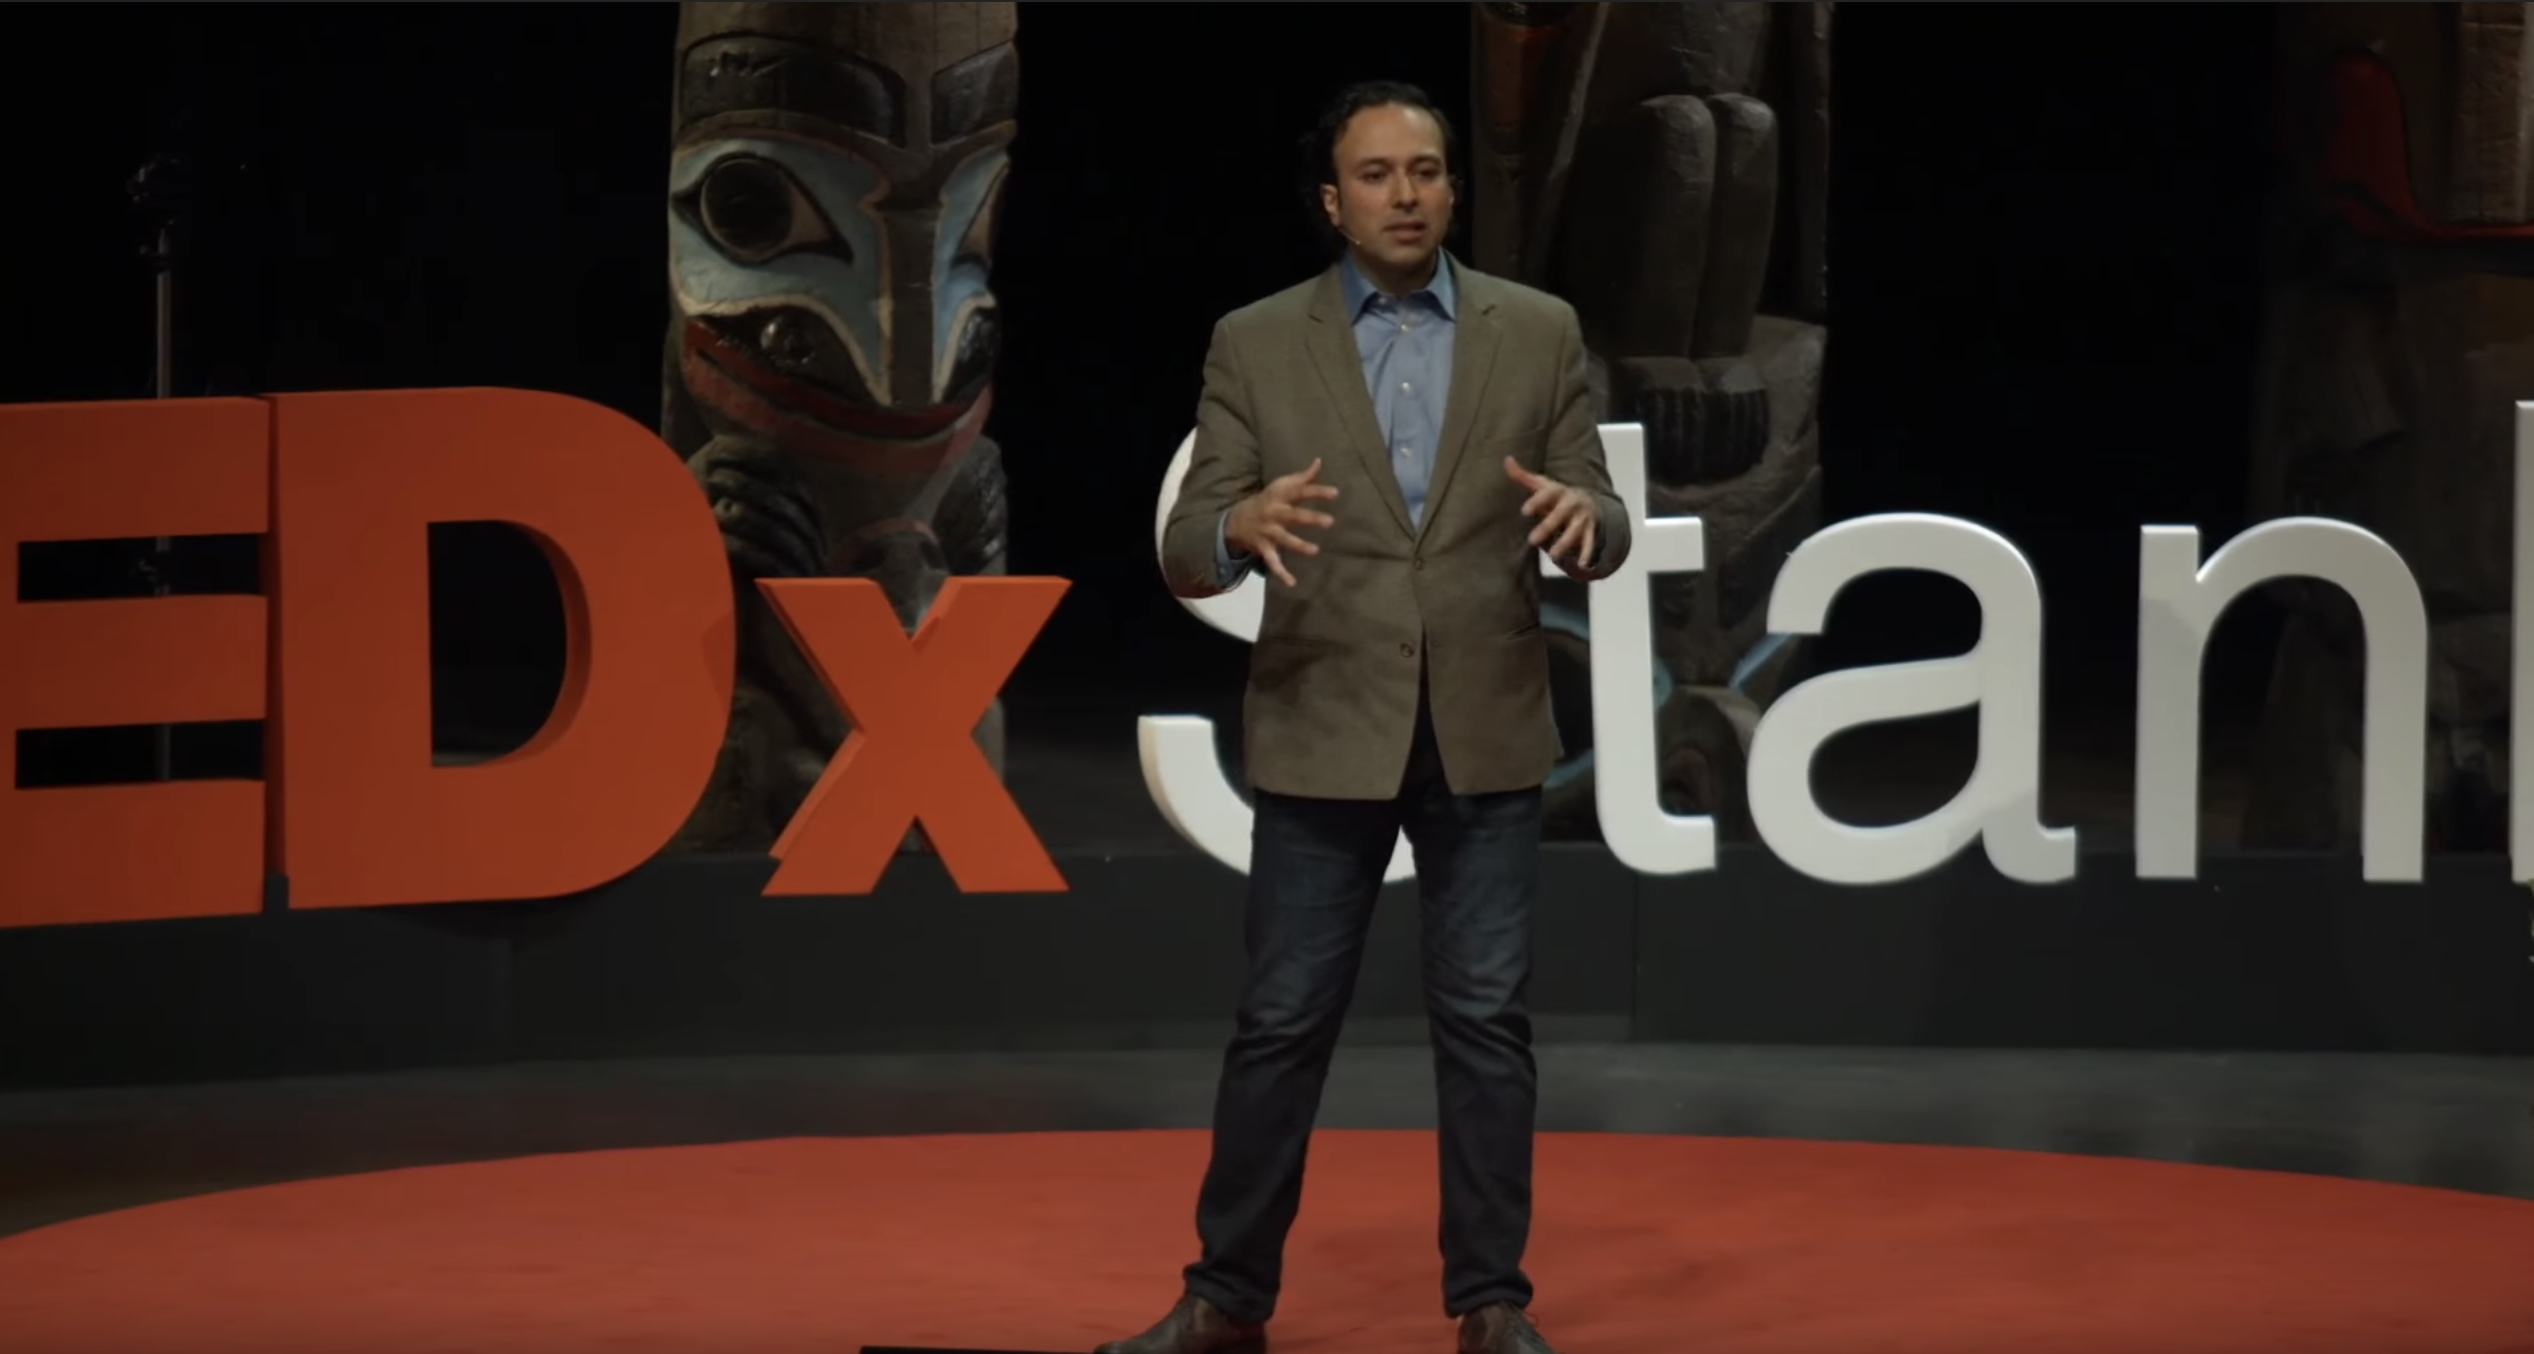 TEDx Event Talk by Karn